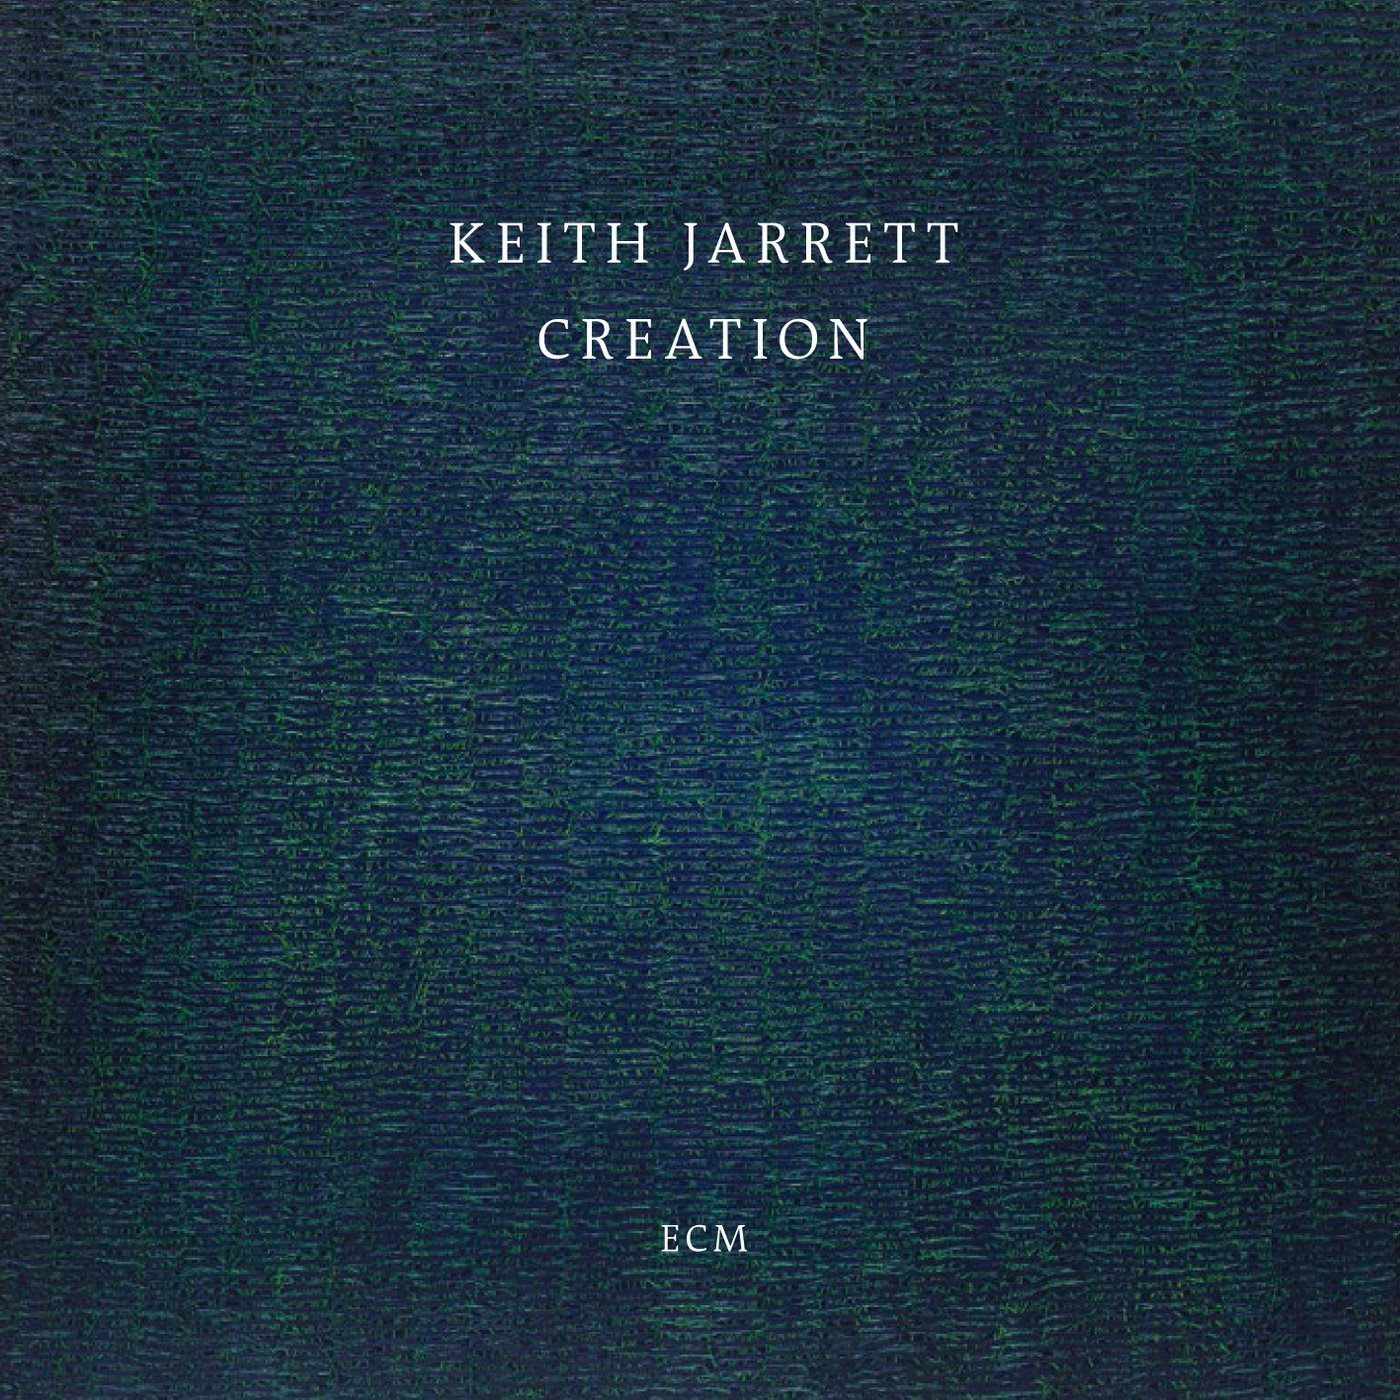 Keith Jarrett - Creation cover